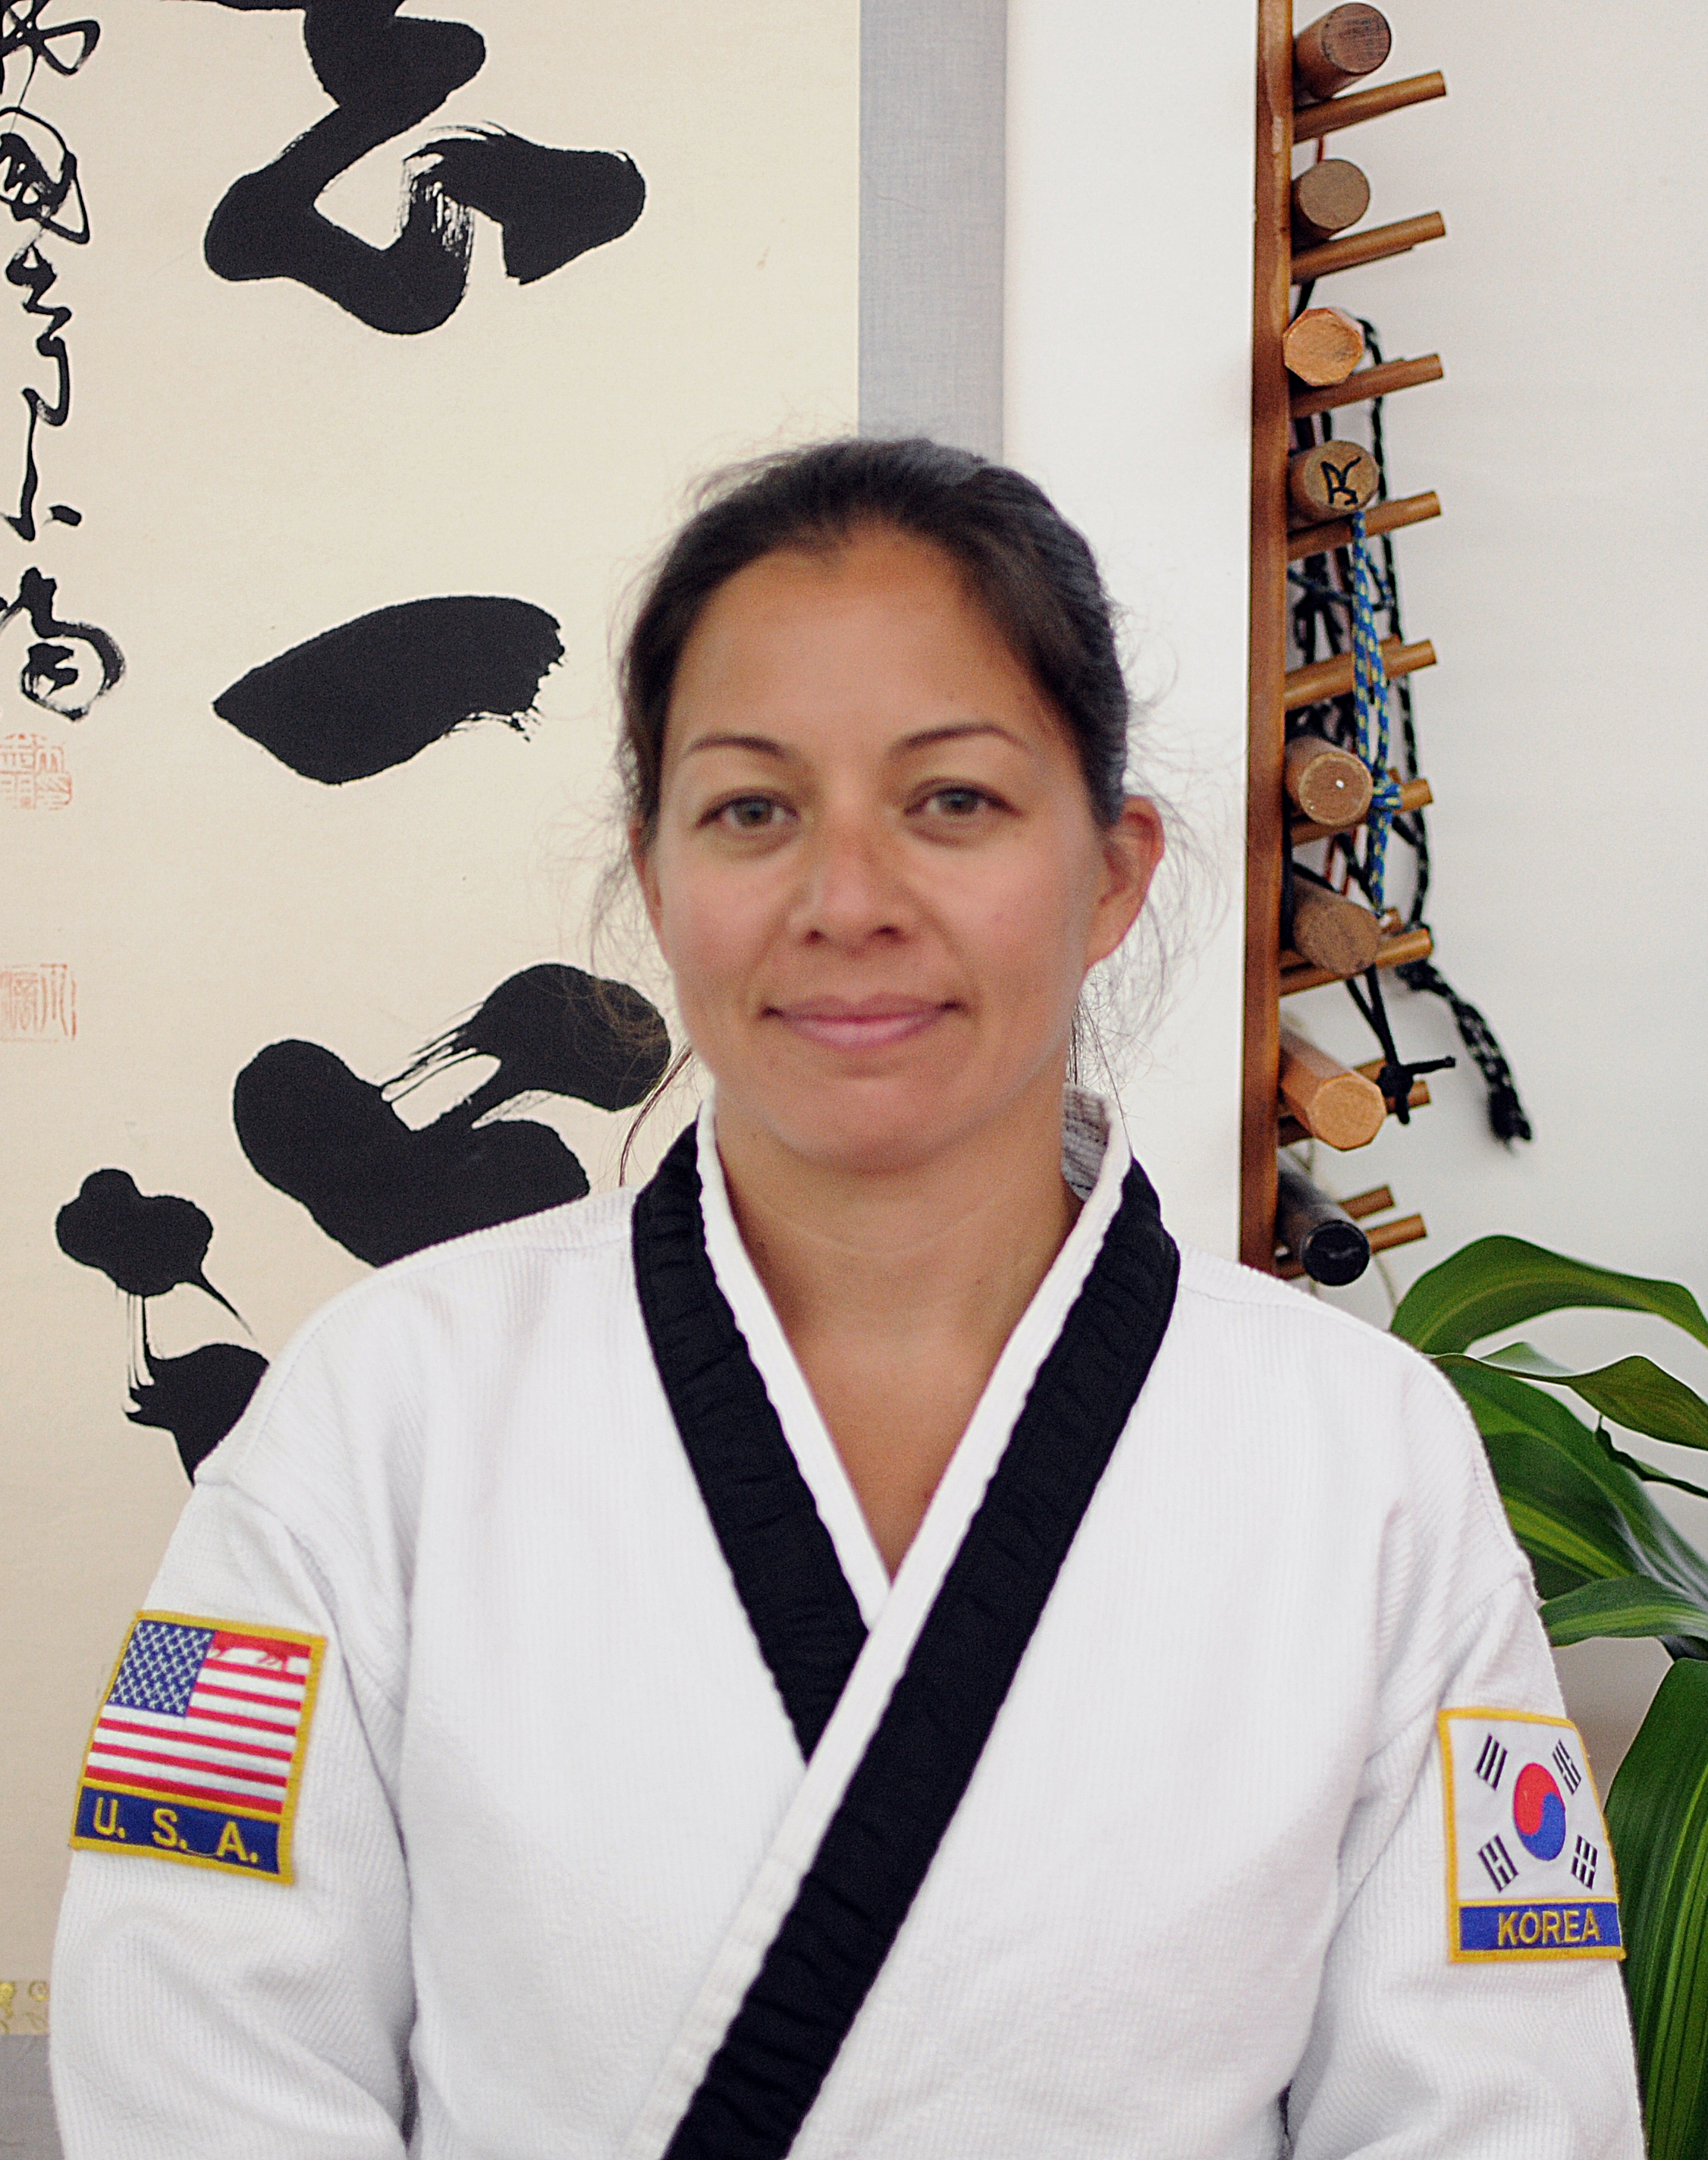 Senior Instructor Michelle C. Alcala  is a 2nd degree black belt and began studying HapKiDo under Master Herbert at WMAC in 2001.  She has taught and assisted, children and adult HapKiDo and Judo classes at WMAC for over a decade.  She has also studied Judo, Capoeira and Yoga.  She believes that studying Hapkido provides many beneficial aspects such as; self defense, physical fitness, focus, perseverance, leadership and overall well-being and she is dedicated to instilling these values in her teachings.